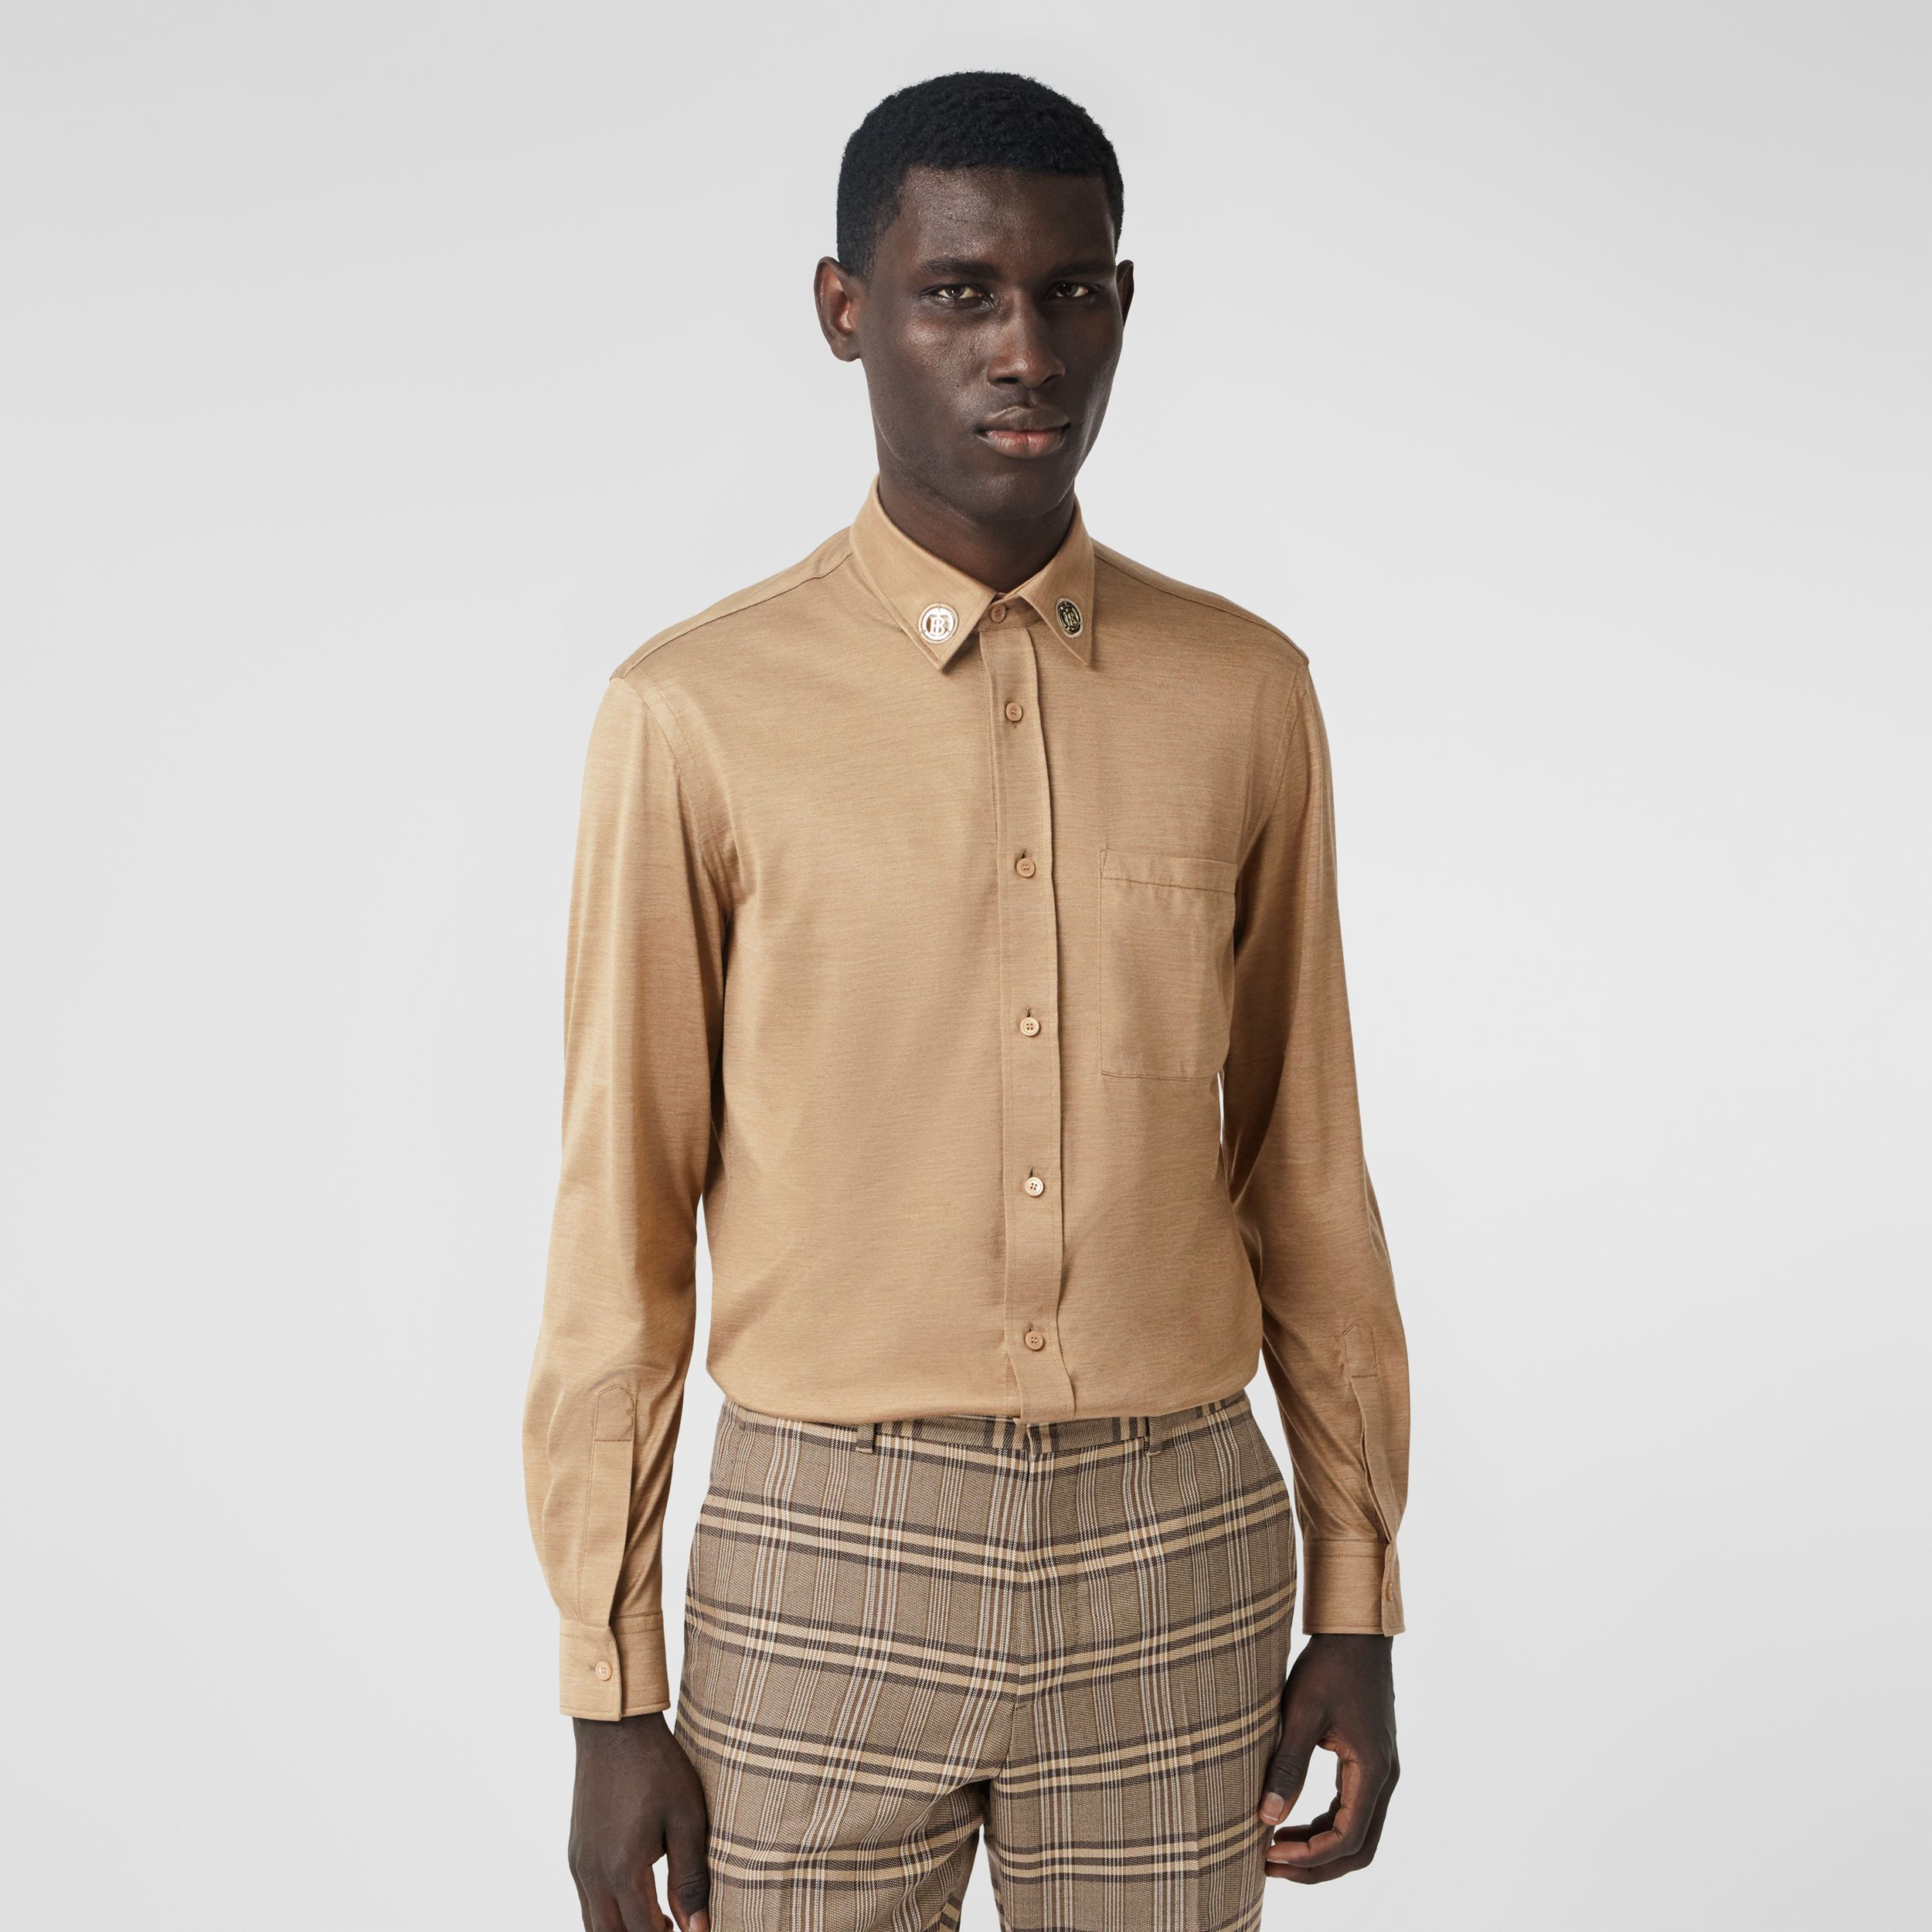 Classic Fit Monogram Motif Silk Jersey Shirt in Soft Fawn | Burberry Hong Kong S.A.R. - 1